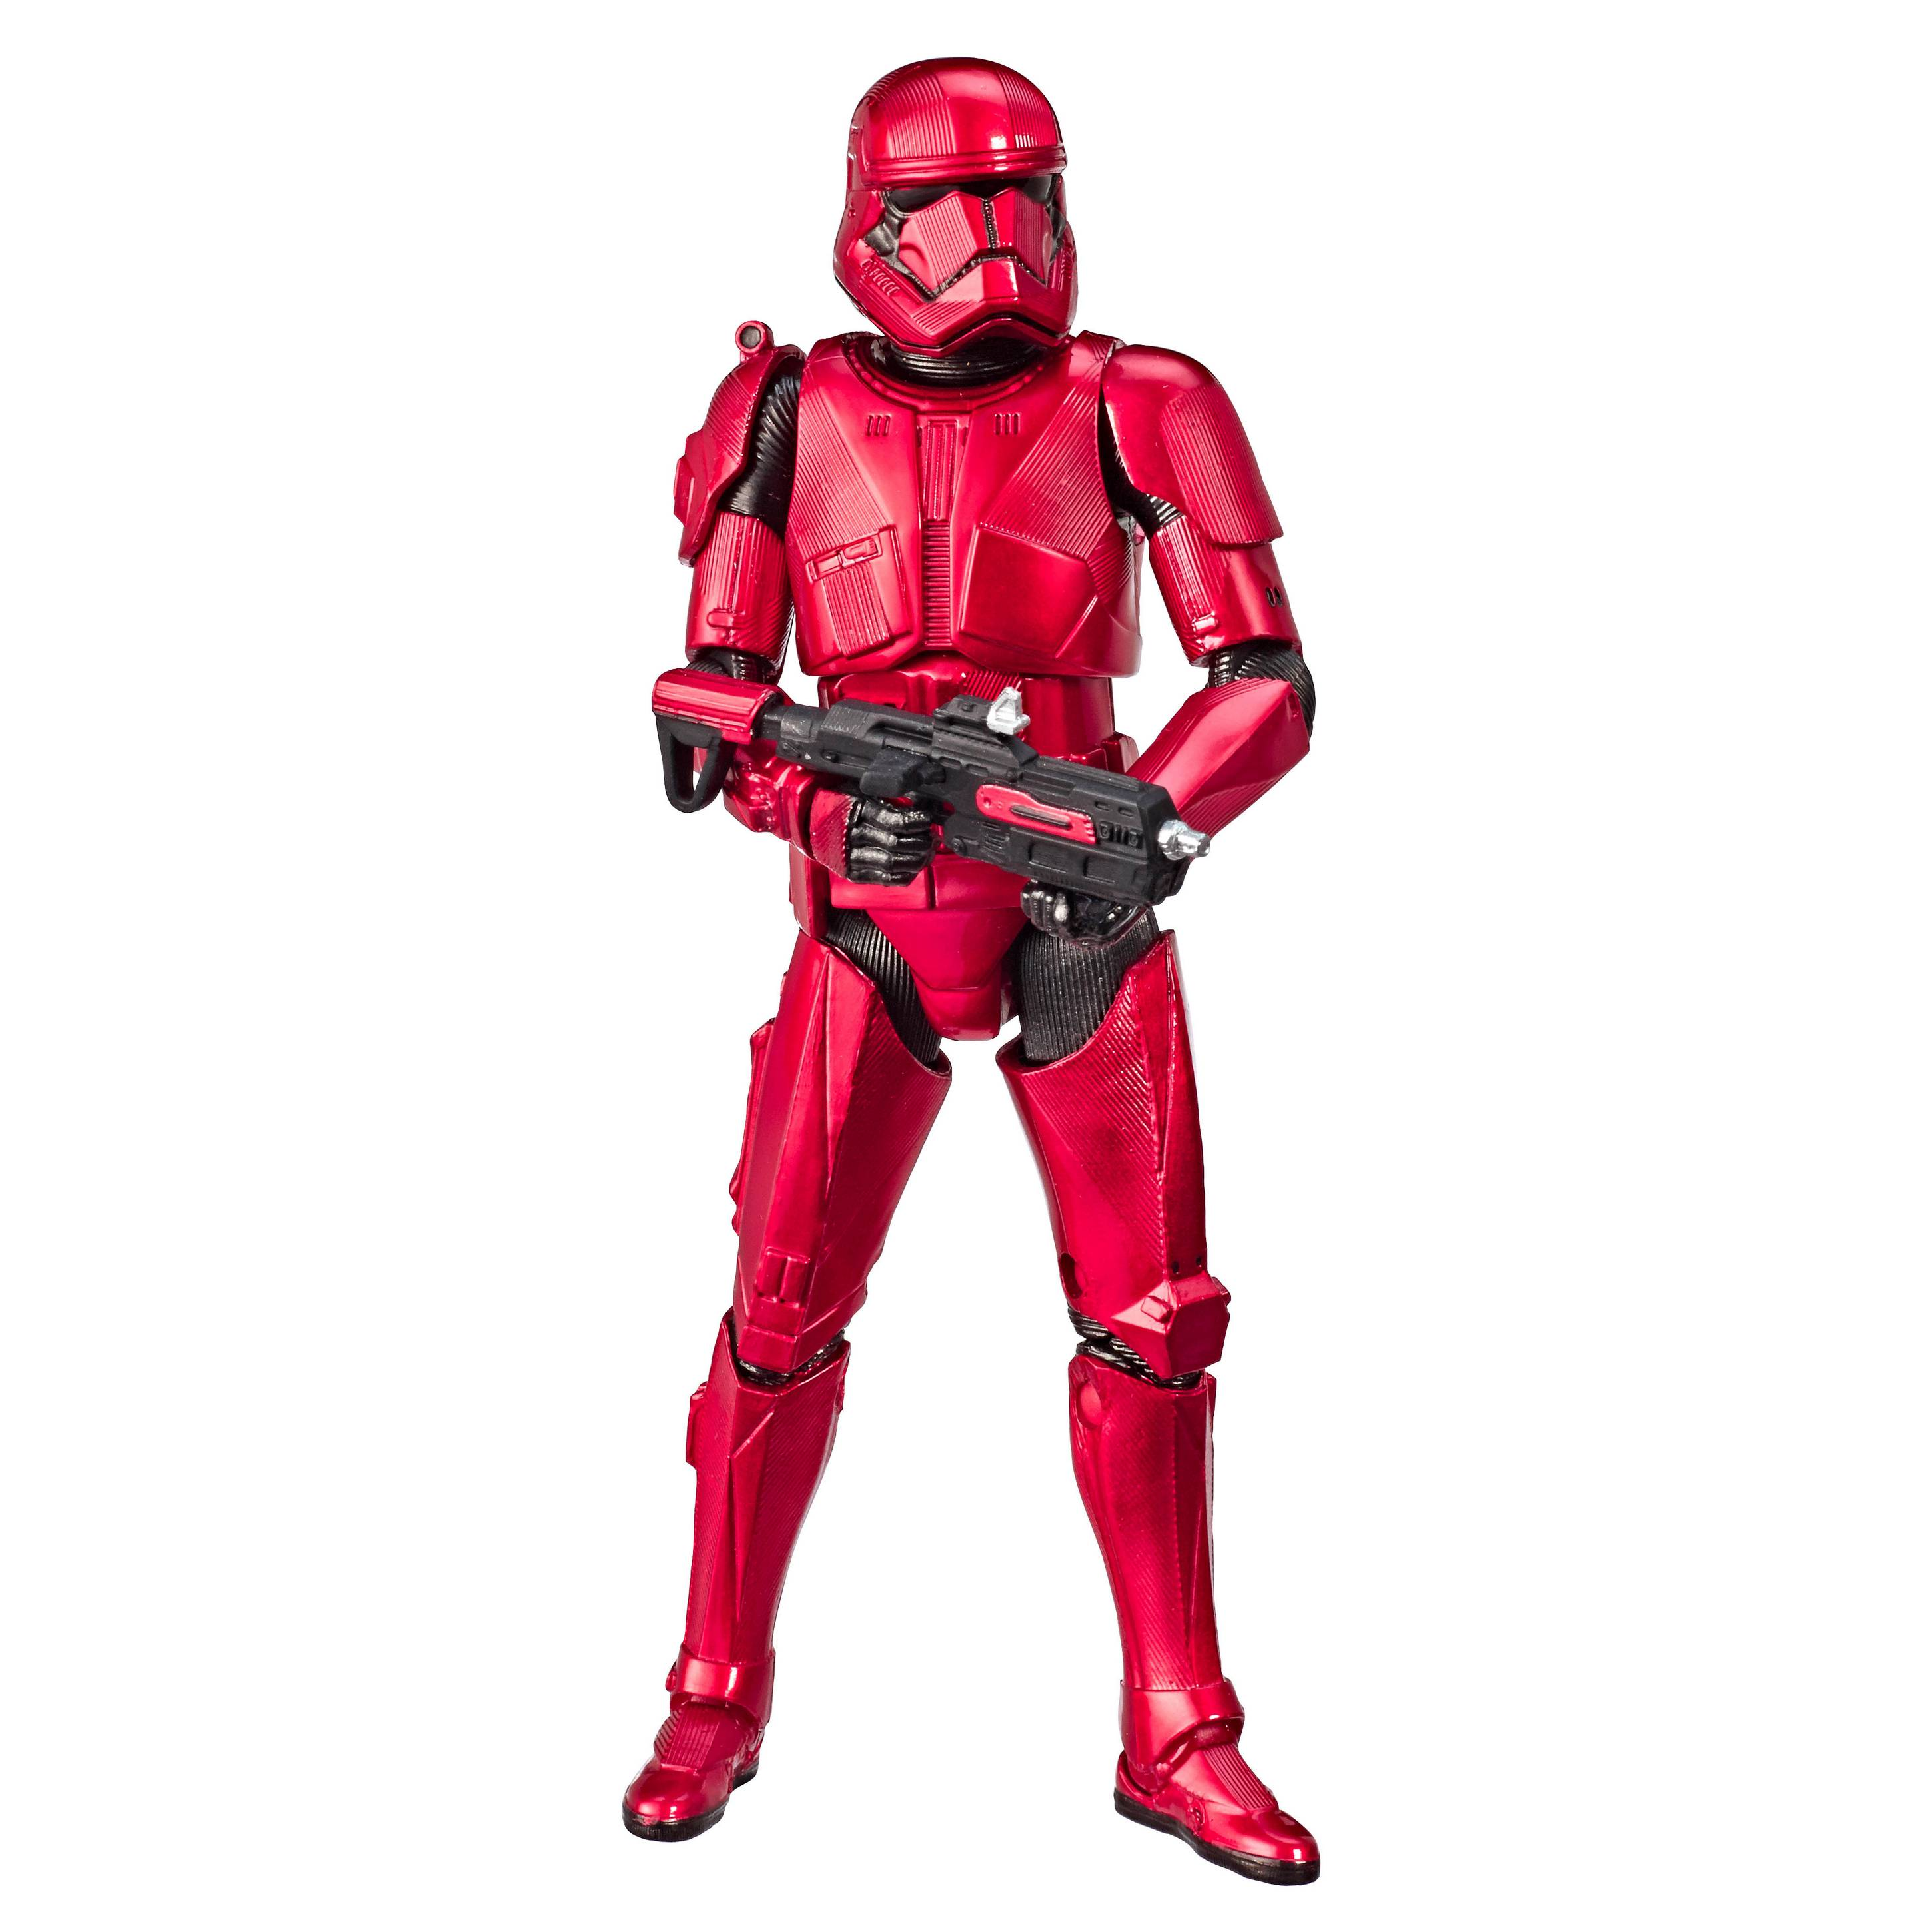 STAR-WARS-THE-BLACK-SERIES-6-INCH-SITH-TROOPER-CARBONIZED-COLLECTION-Figure-oop.jpg